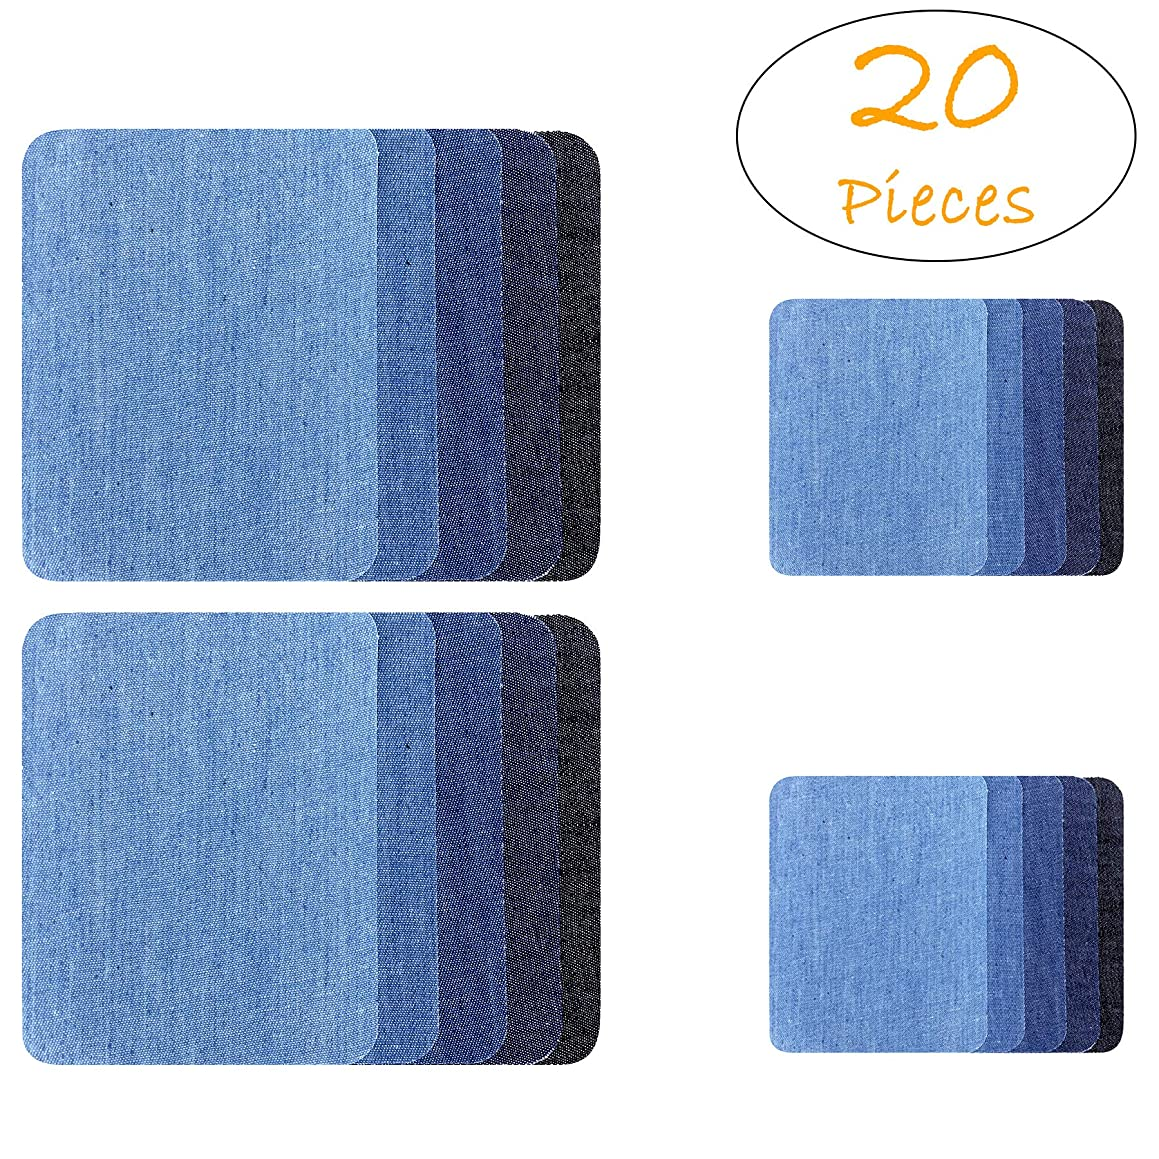 [20 PCS] Iron-on Patches, Denim Cotton DIY Decorative Patch and Jean Repair Patches, 2 Sizes (4.9 x 3.7 and 3 x 2 inch), 5 Colors (20-Pack-Comb1)